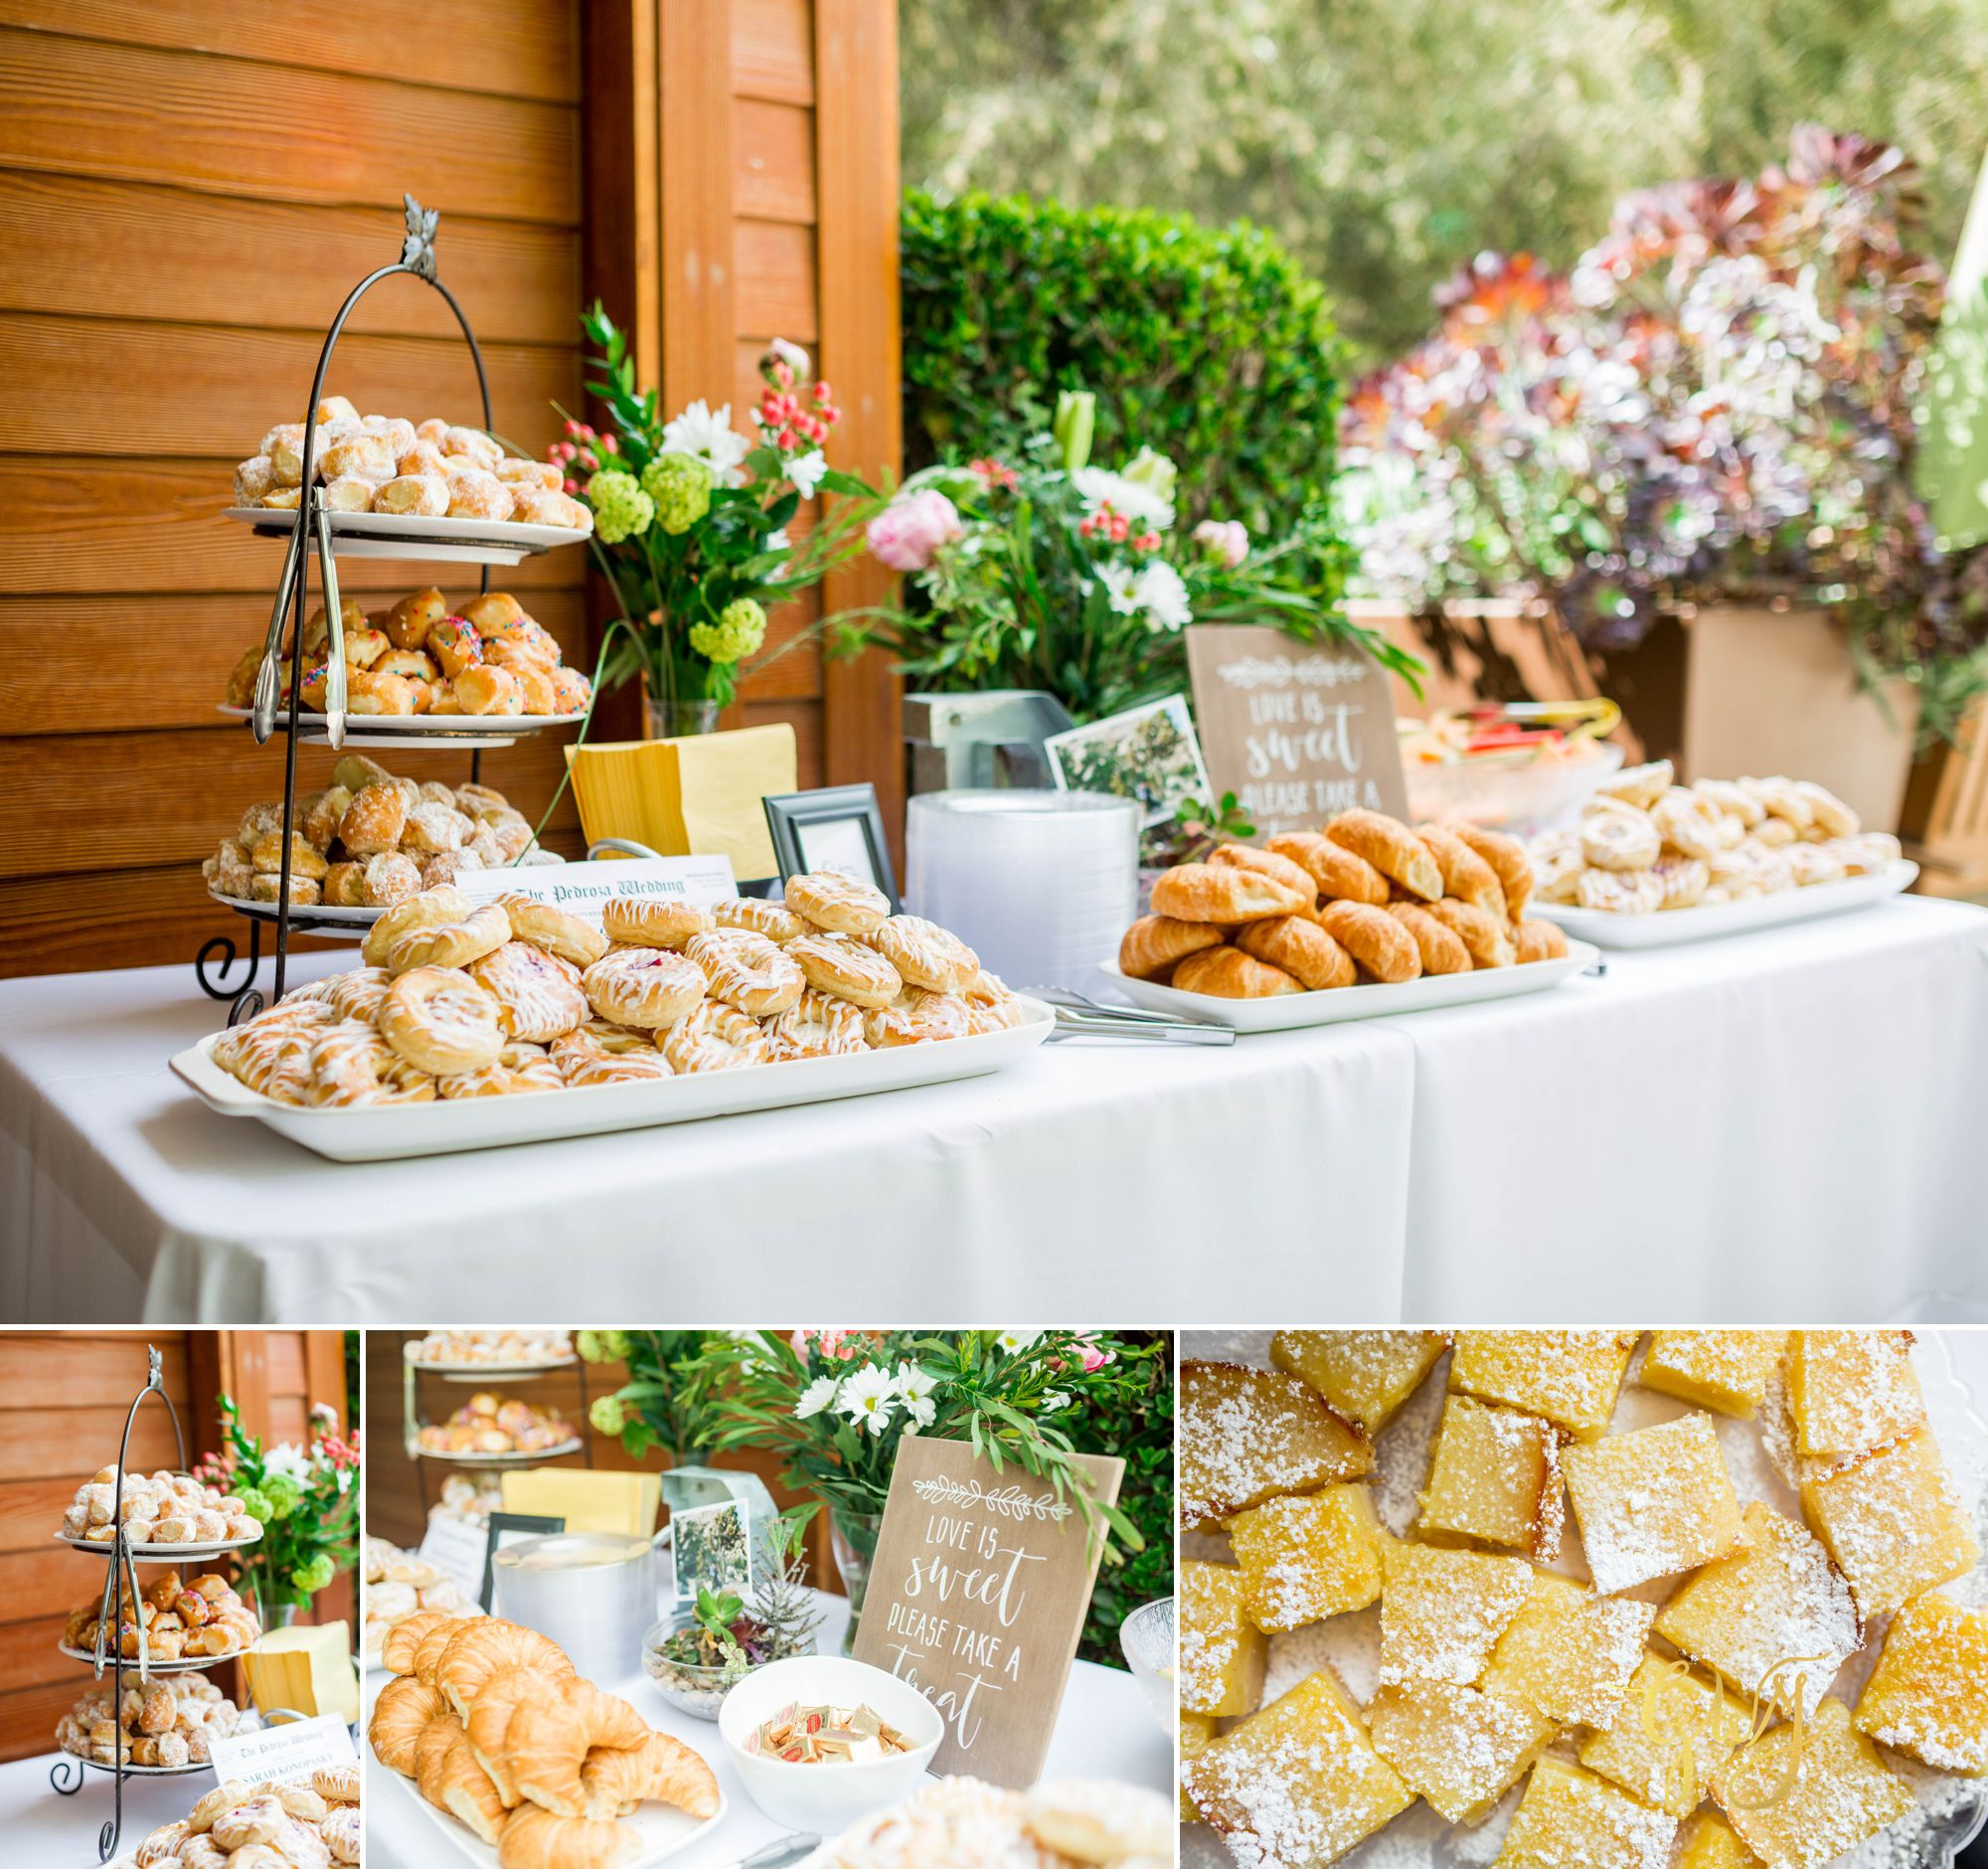 Jose + Sarah Norman P Murray Mission Viejo Summer Wedding by Glass Woods Media 32.jpg